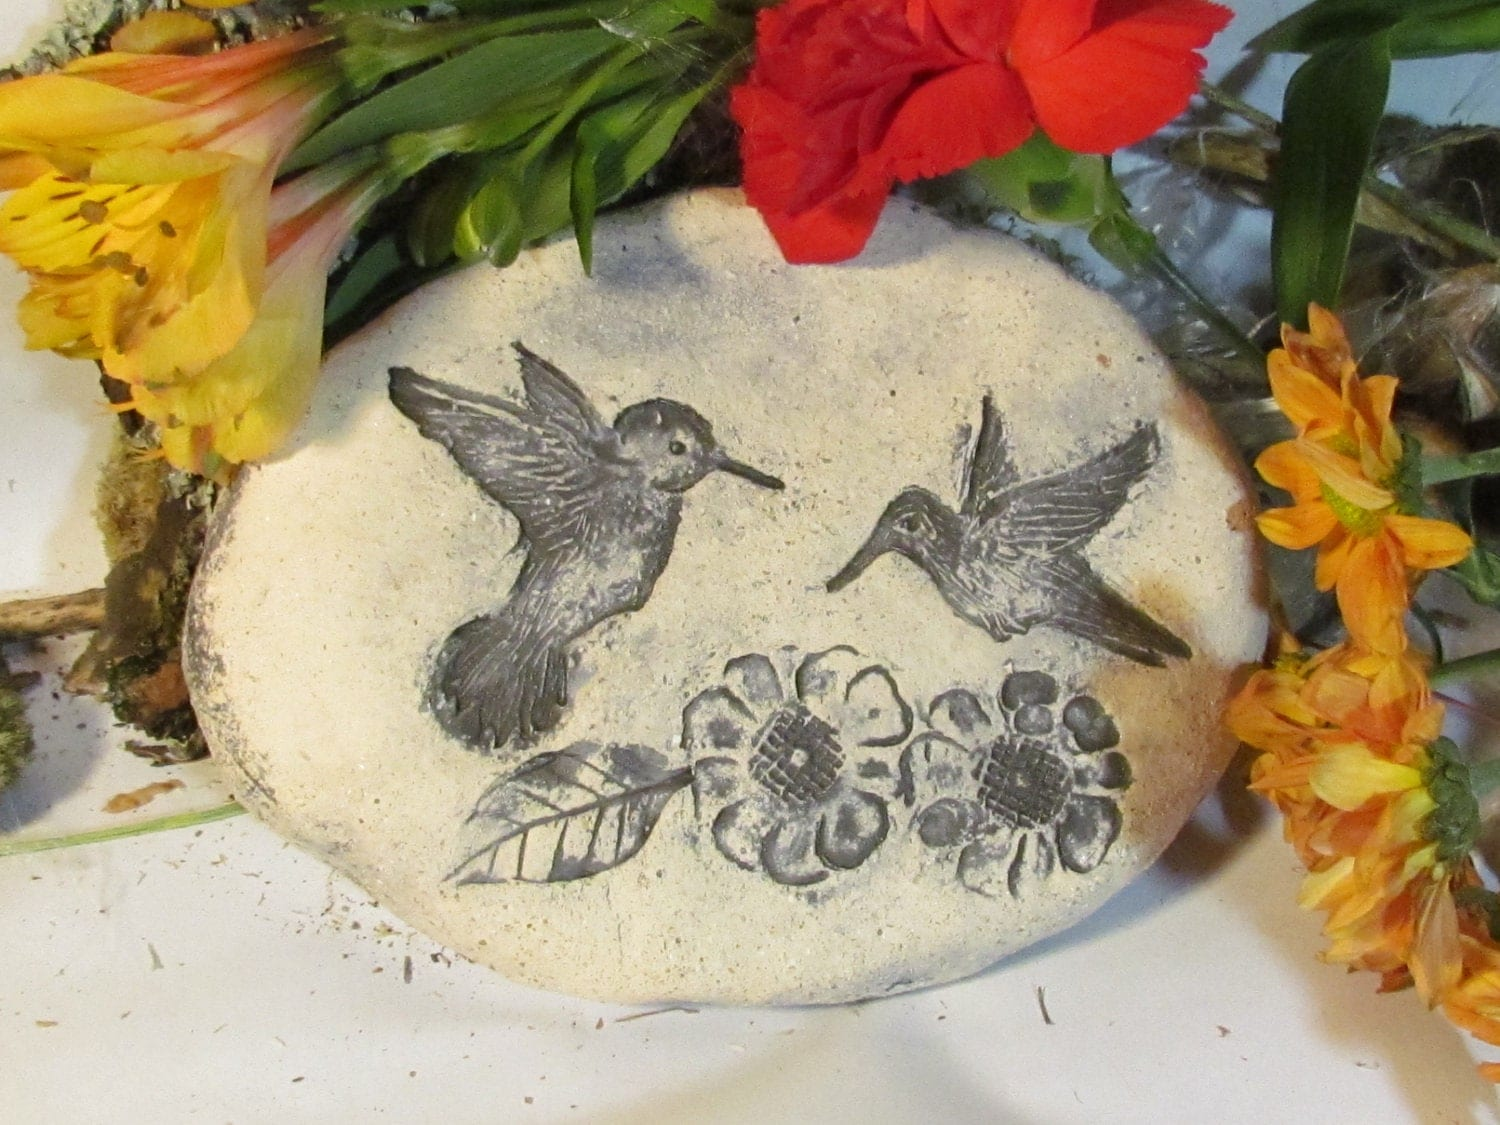 Hummingbird garden stone garden decor rustic outdoor garden for Hummingbird decor